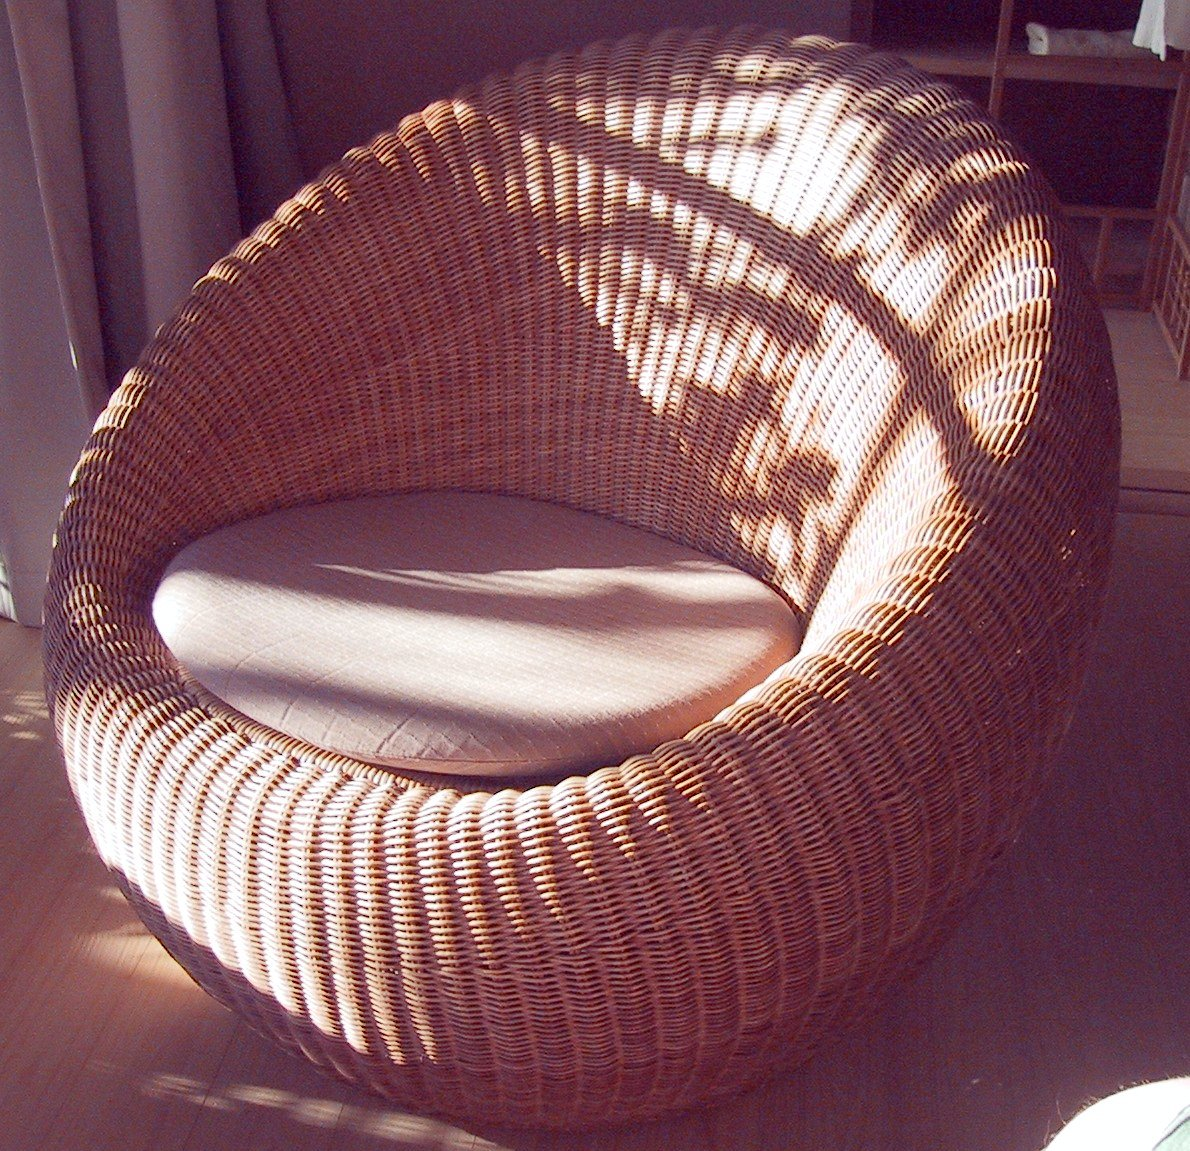 cane rattan furniture Indoor wicker & rattan modern wicker also carries a great selection of high-quality indoor wicker and rattan furniture in a variety of styles, uses, and cushion fabric color options to compliment any home decor made for use in a sun room or indoor area only.